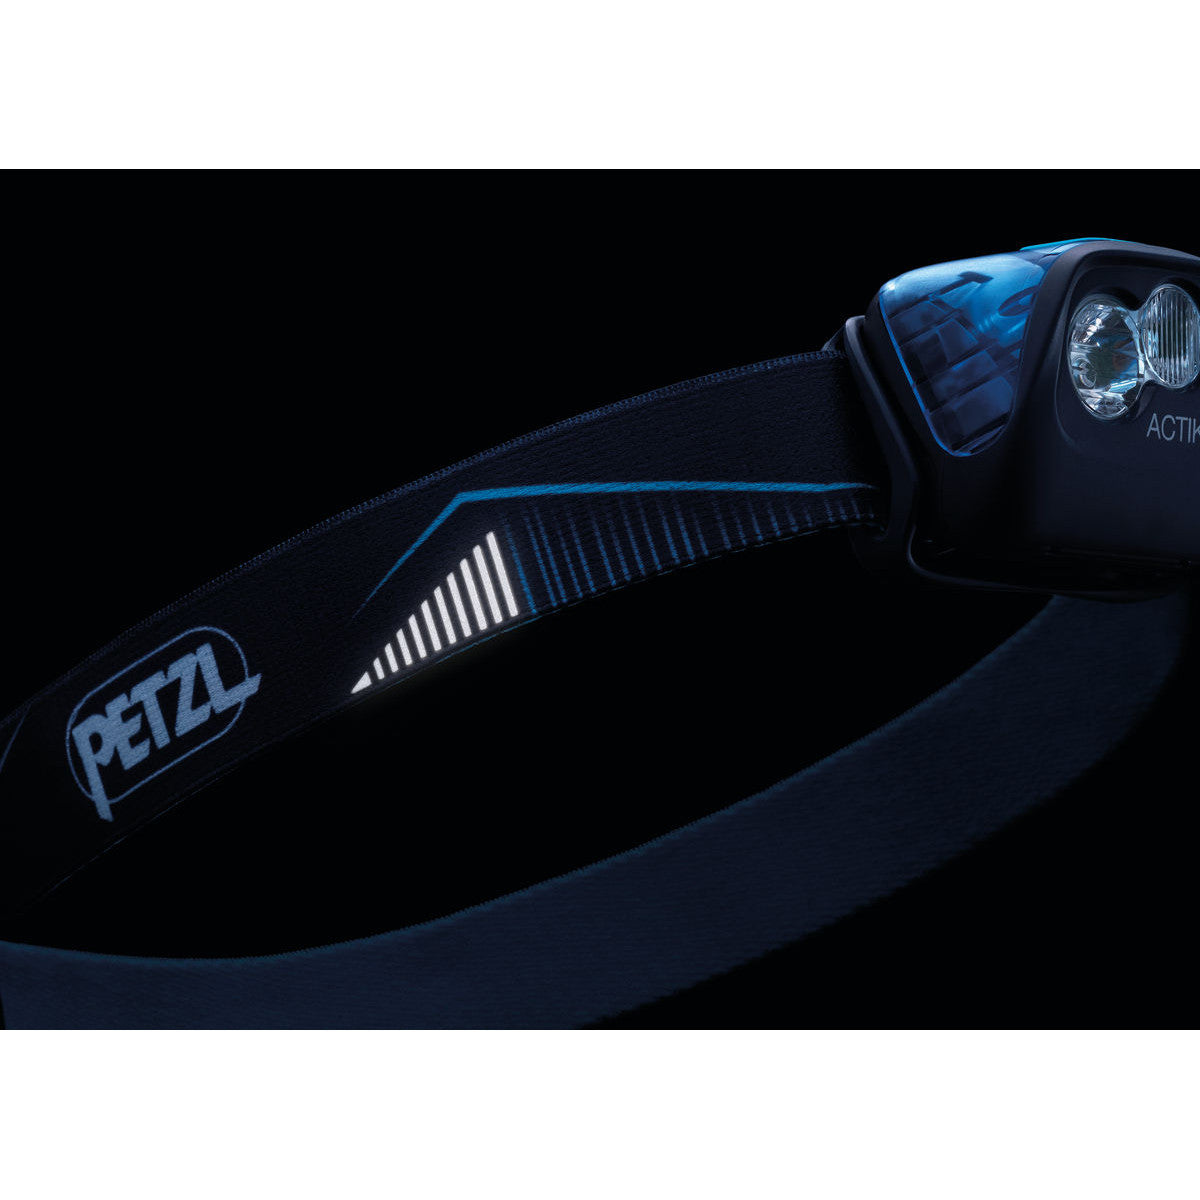 Petzl Actik Headtorch in Blue showing artwork on blue strap that glows for night visibility